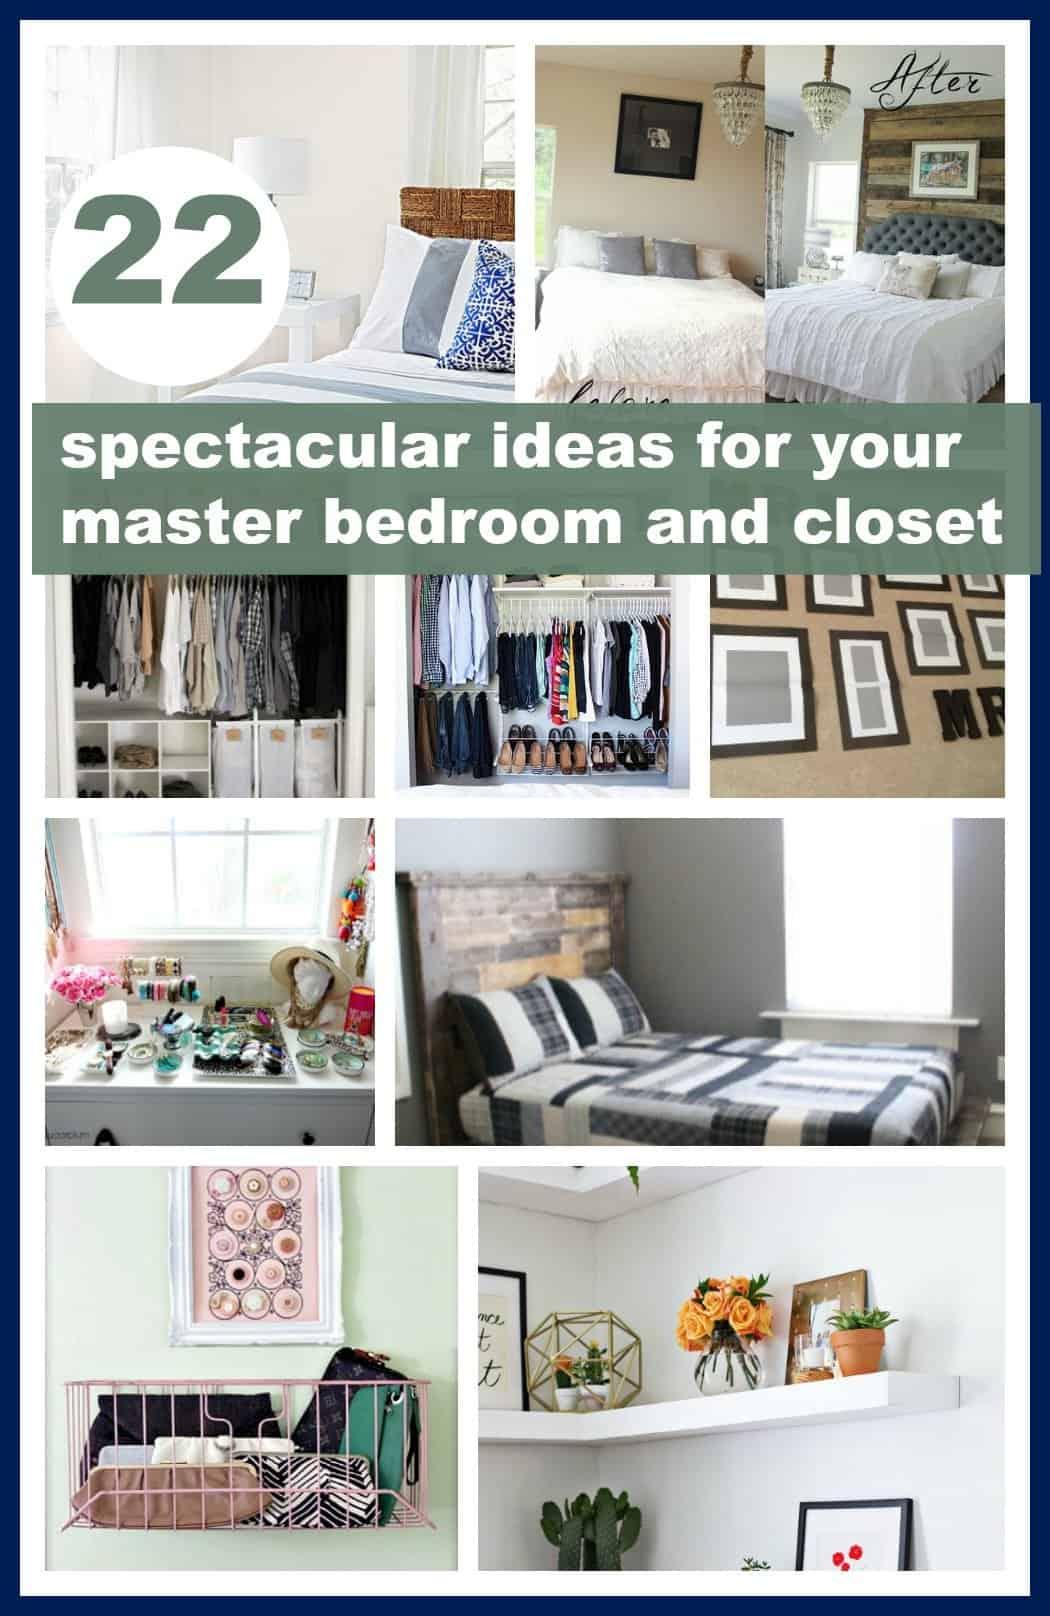 22 spectacular ideas for your master bedroom and closet